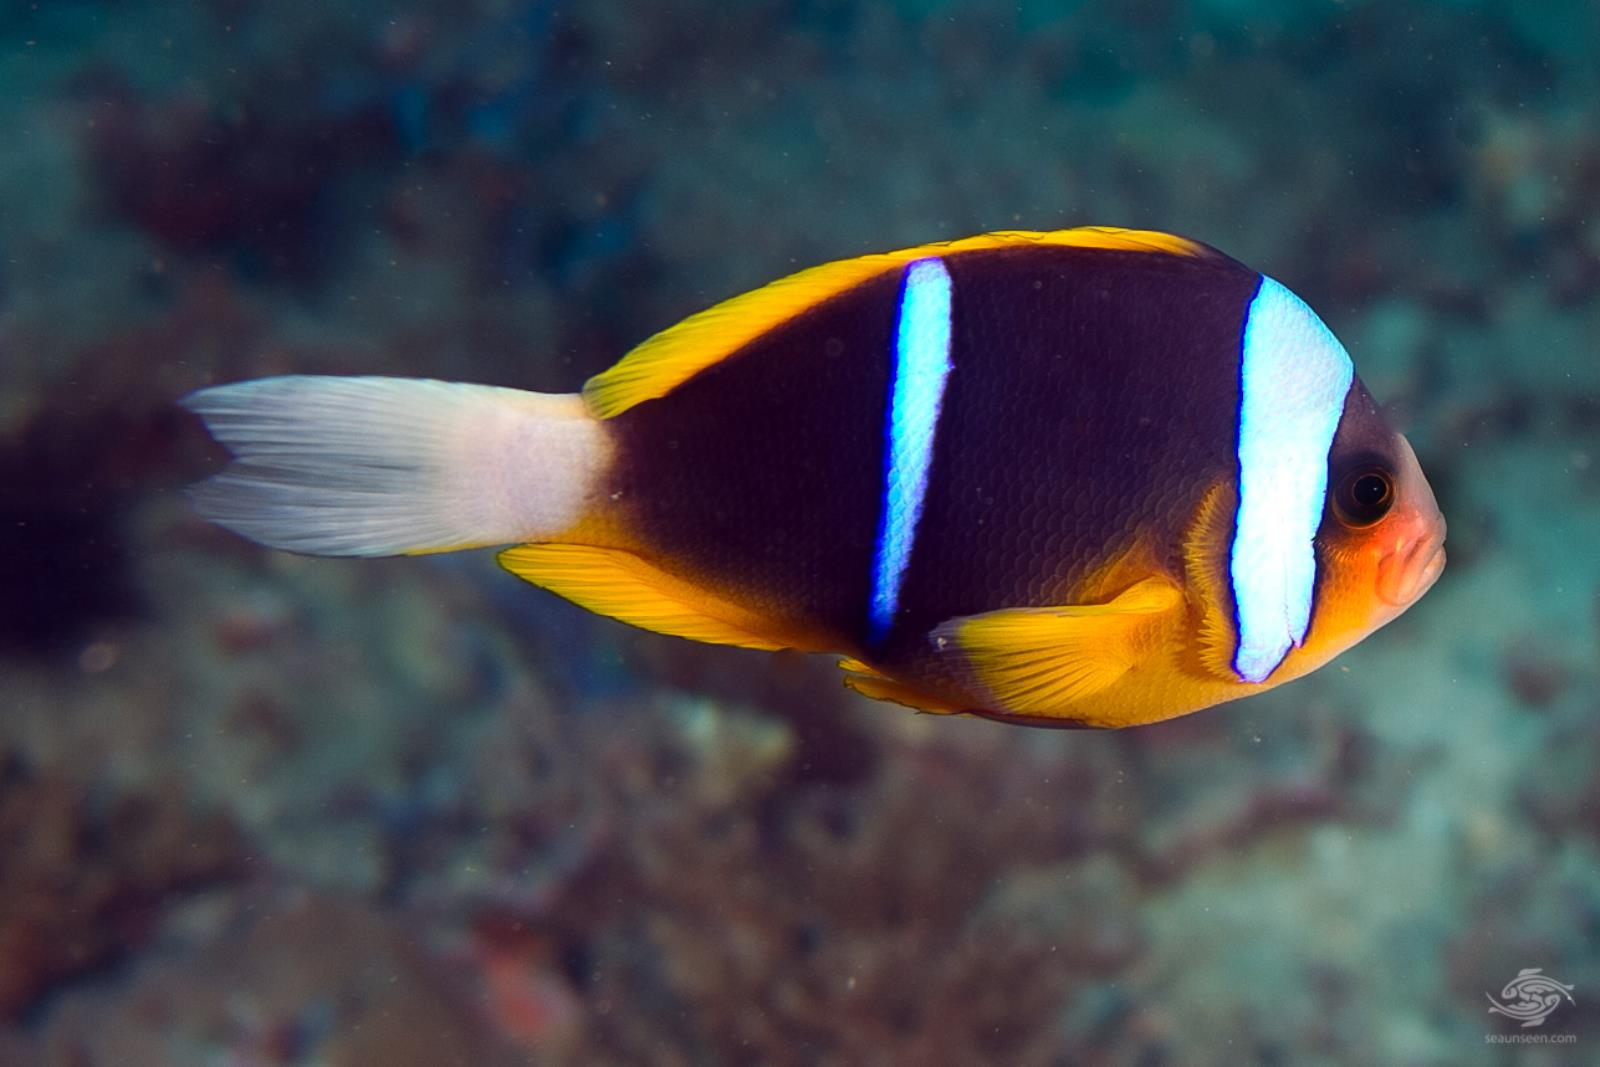 Allard 39 s clownfish facts and photographs seaunseen for Blue clown fish